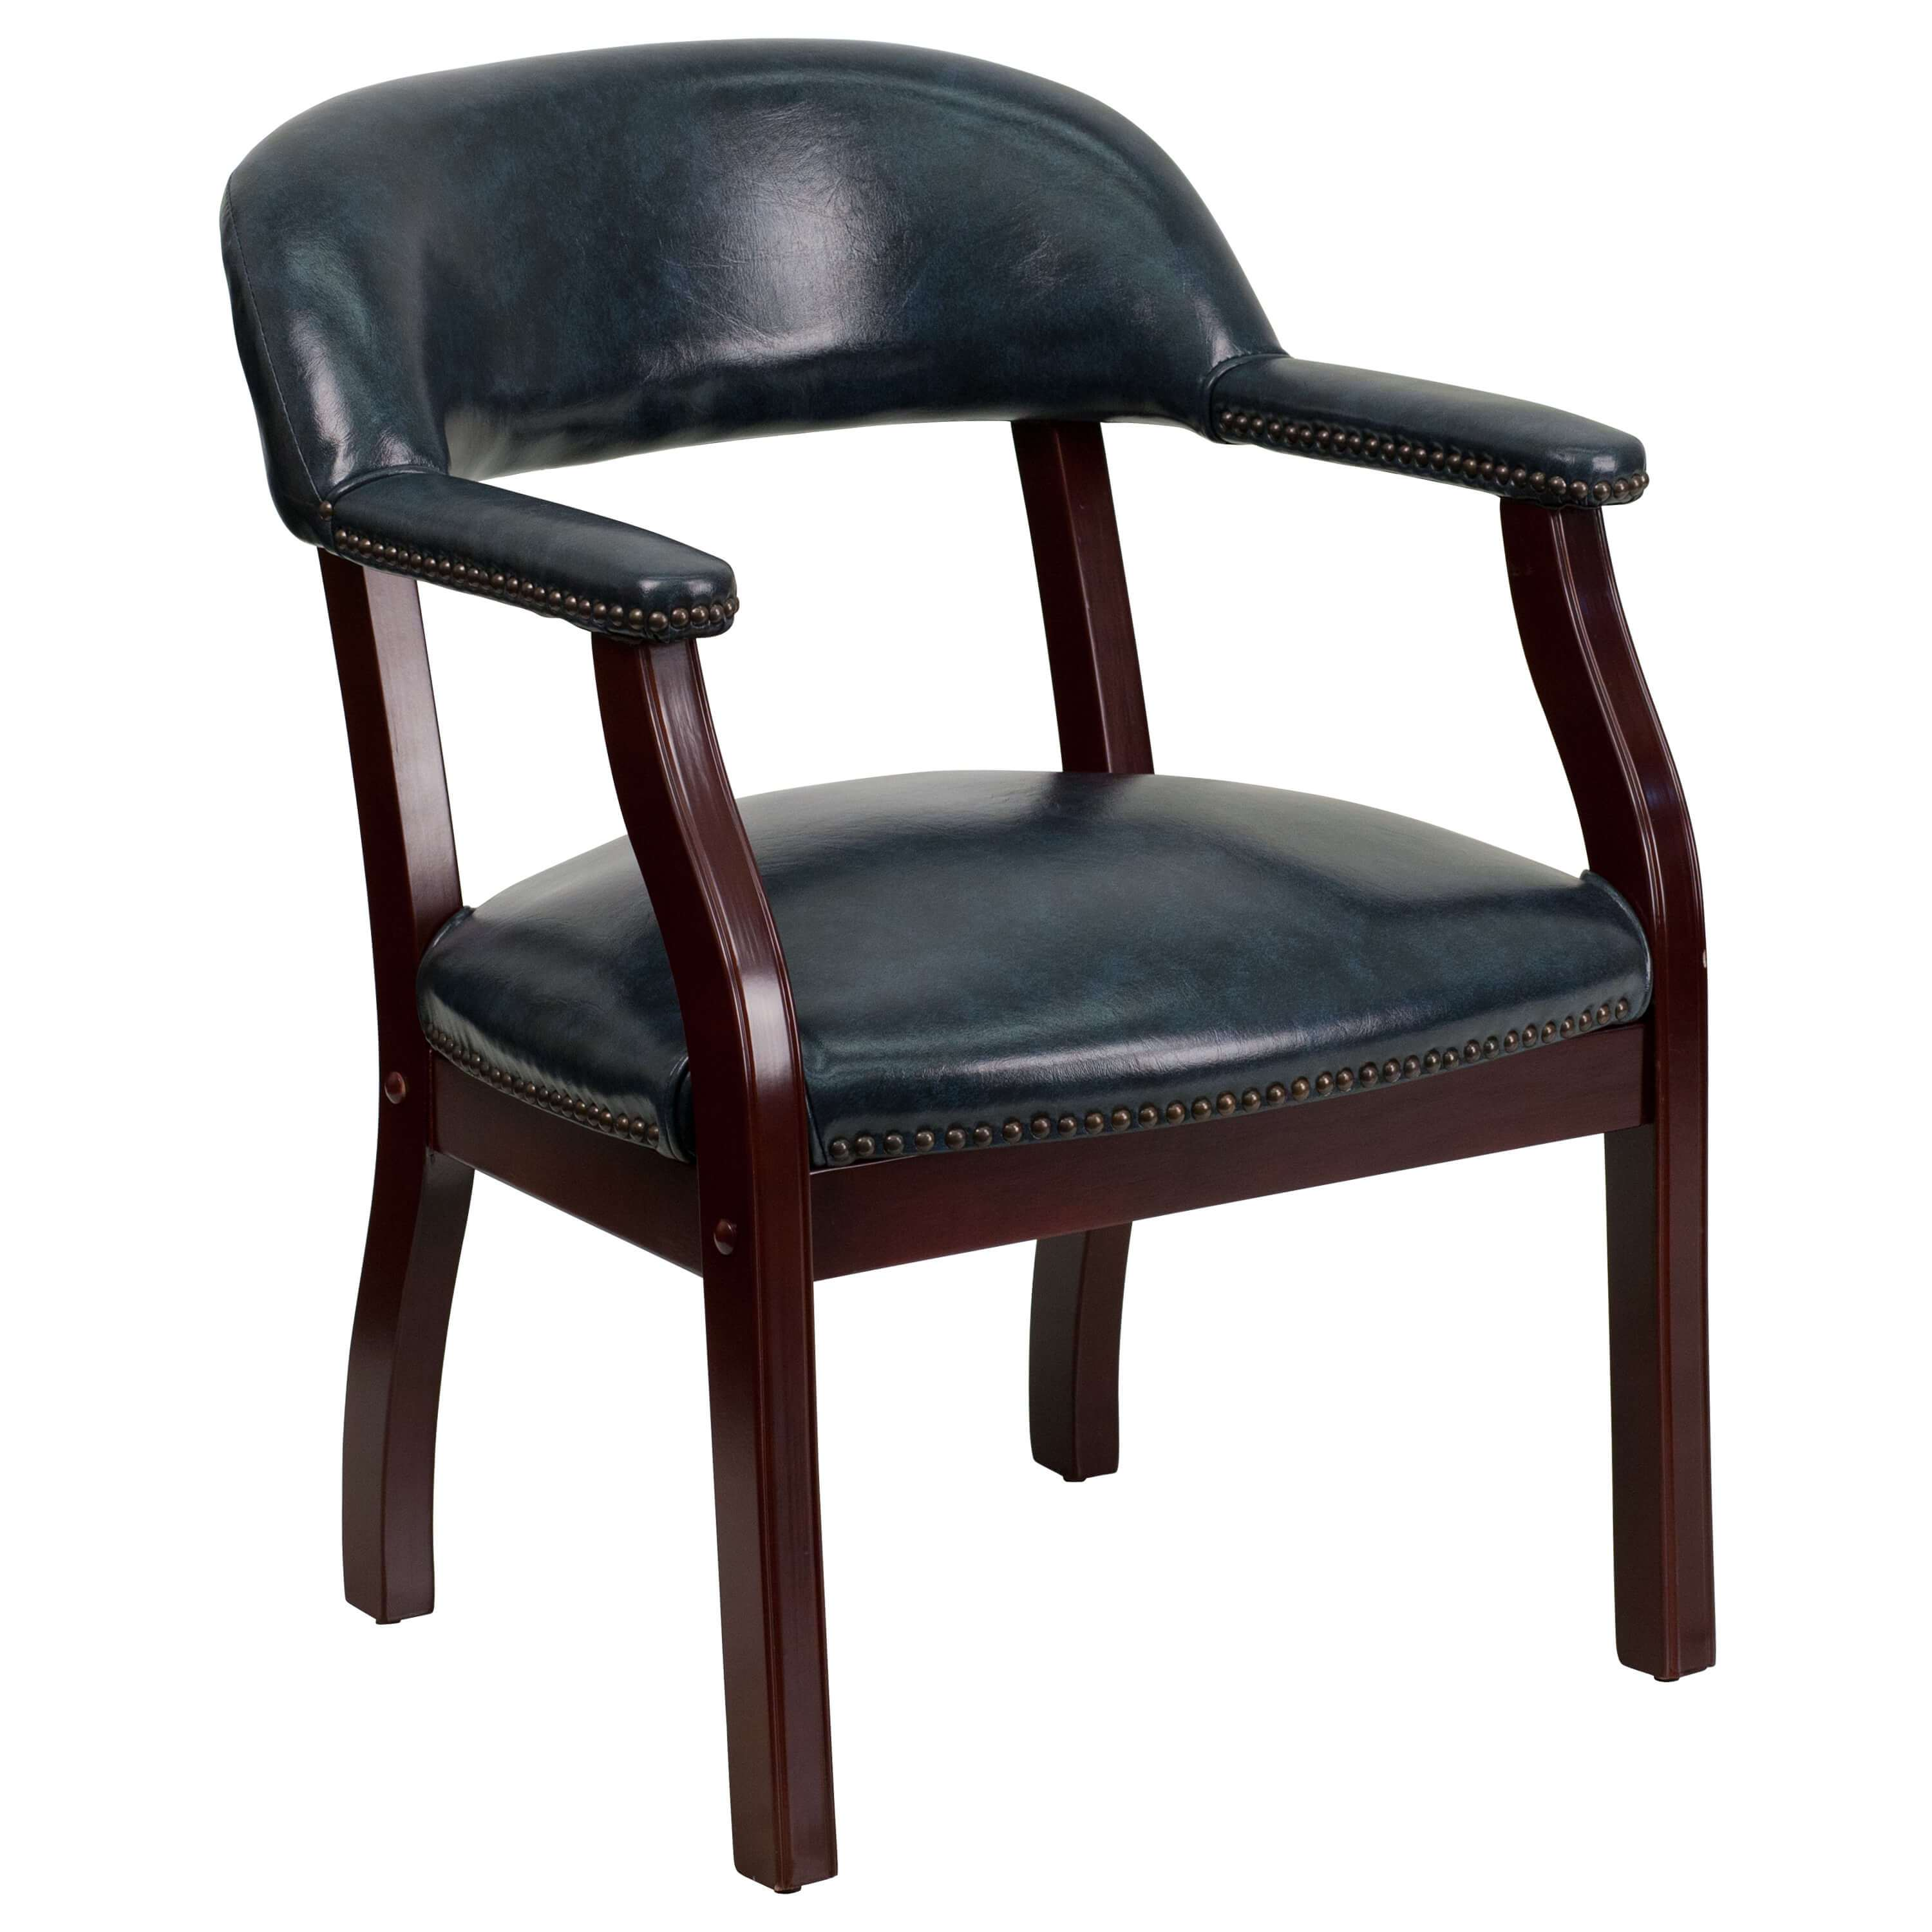 Side chairs with arms CUB B Z105 NAVY GG FLA